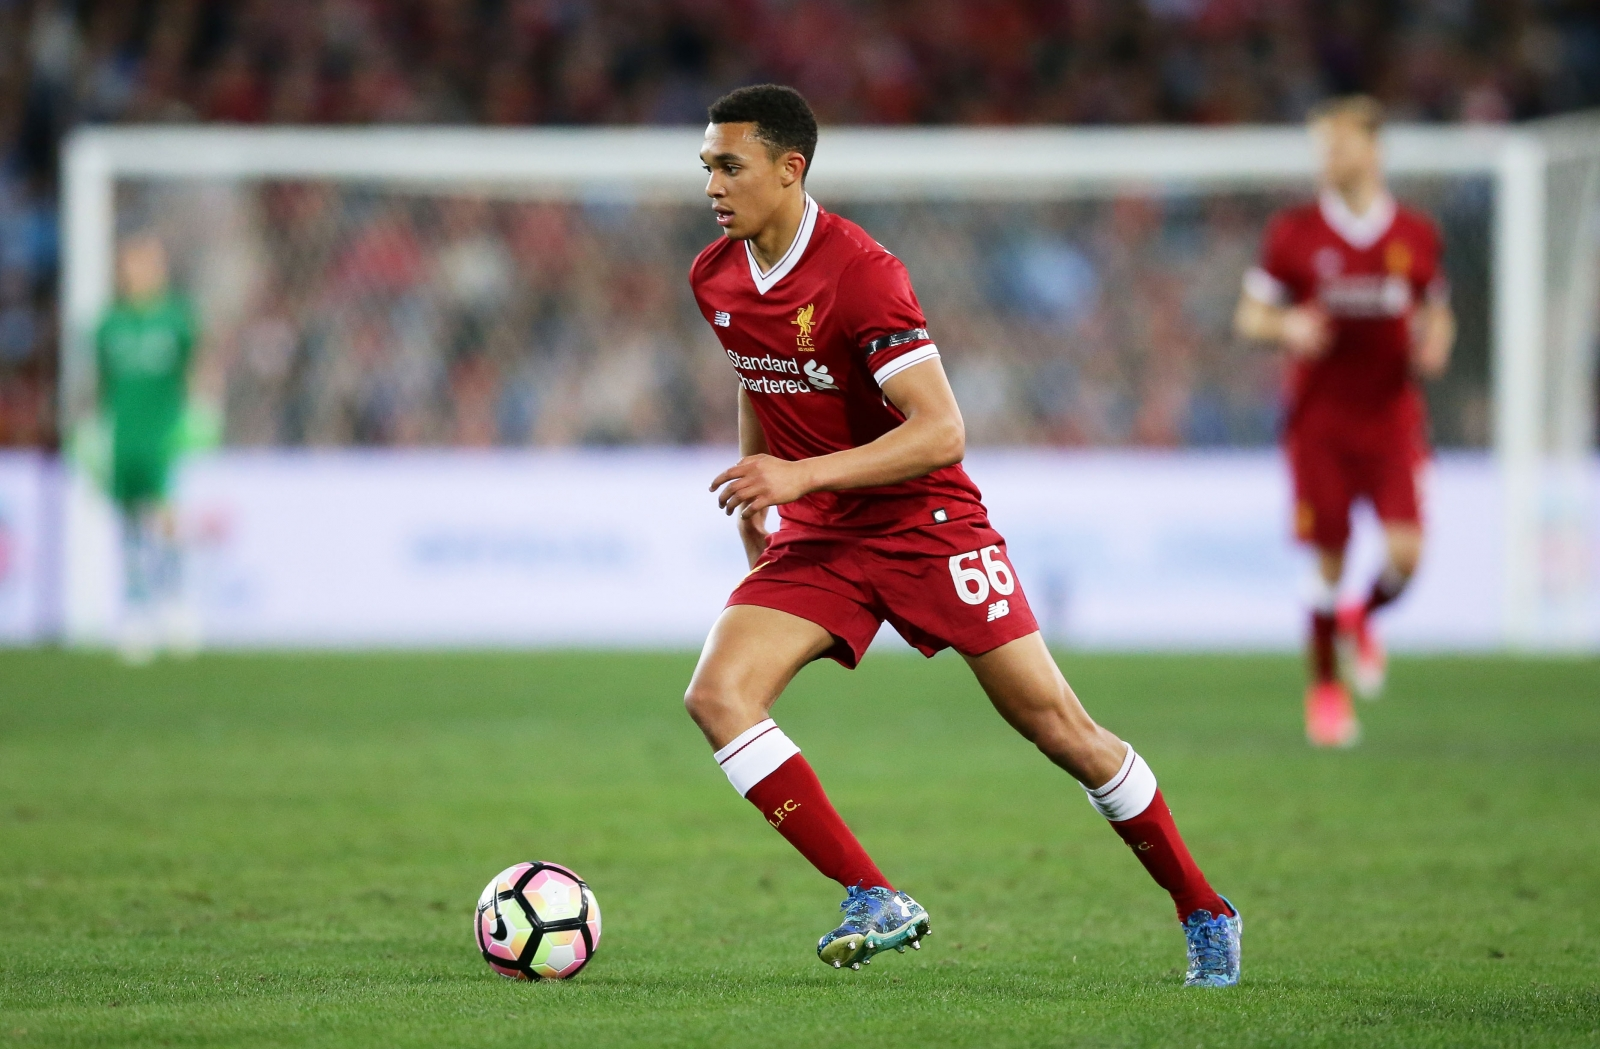 Liverpool boss Jurgen Klopp praises 'dead cheeky' Trent Alexander-Arnold after Champions League goal